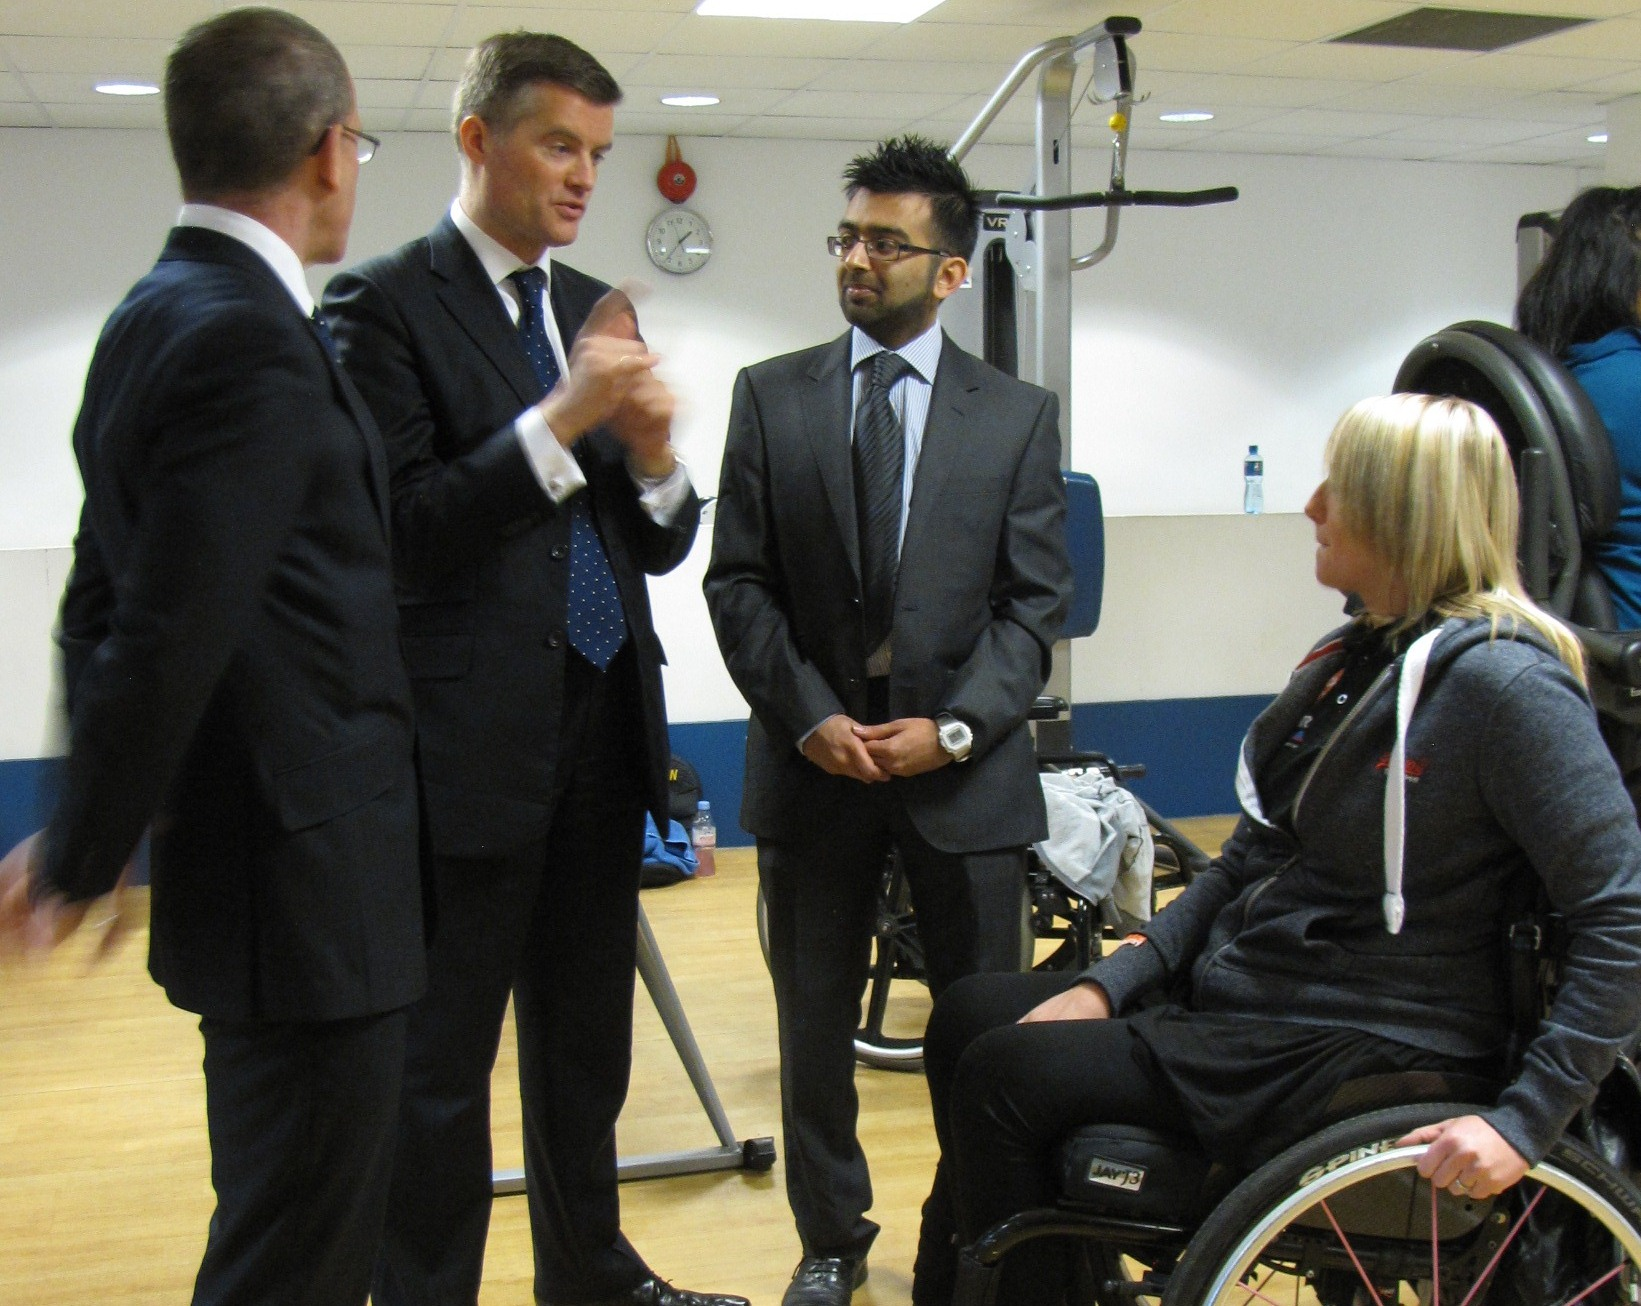 Mark Harper MP meeting InstructAbility graduate Lindsey Leggit